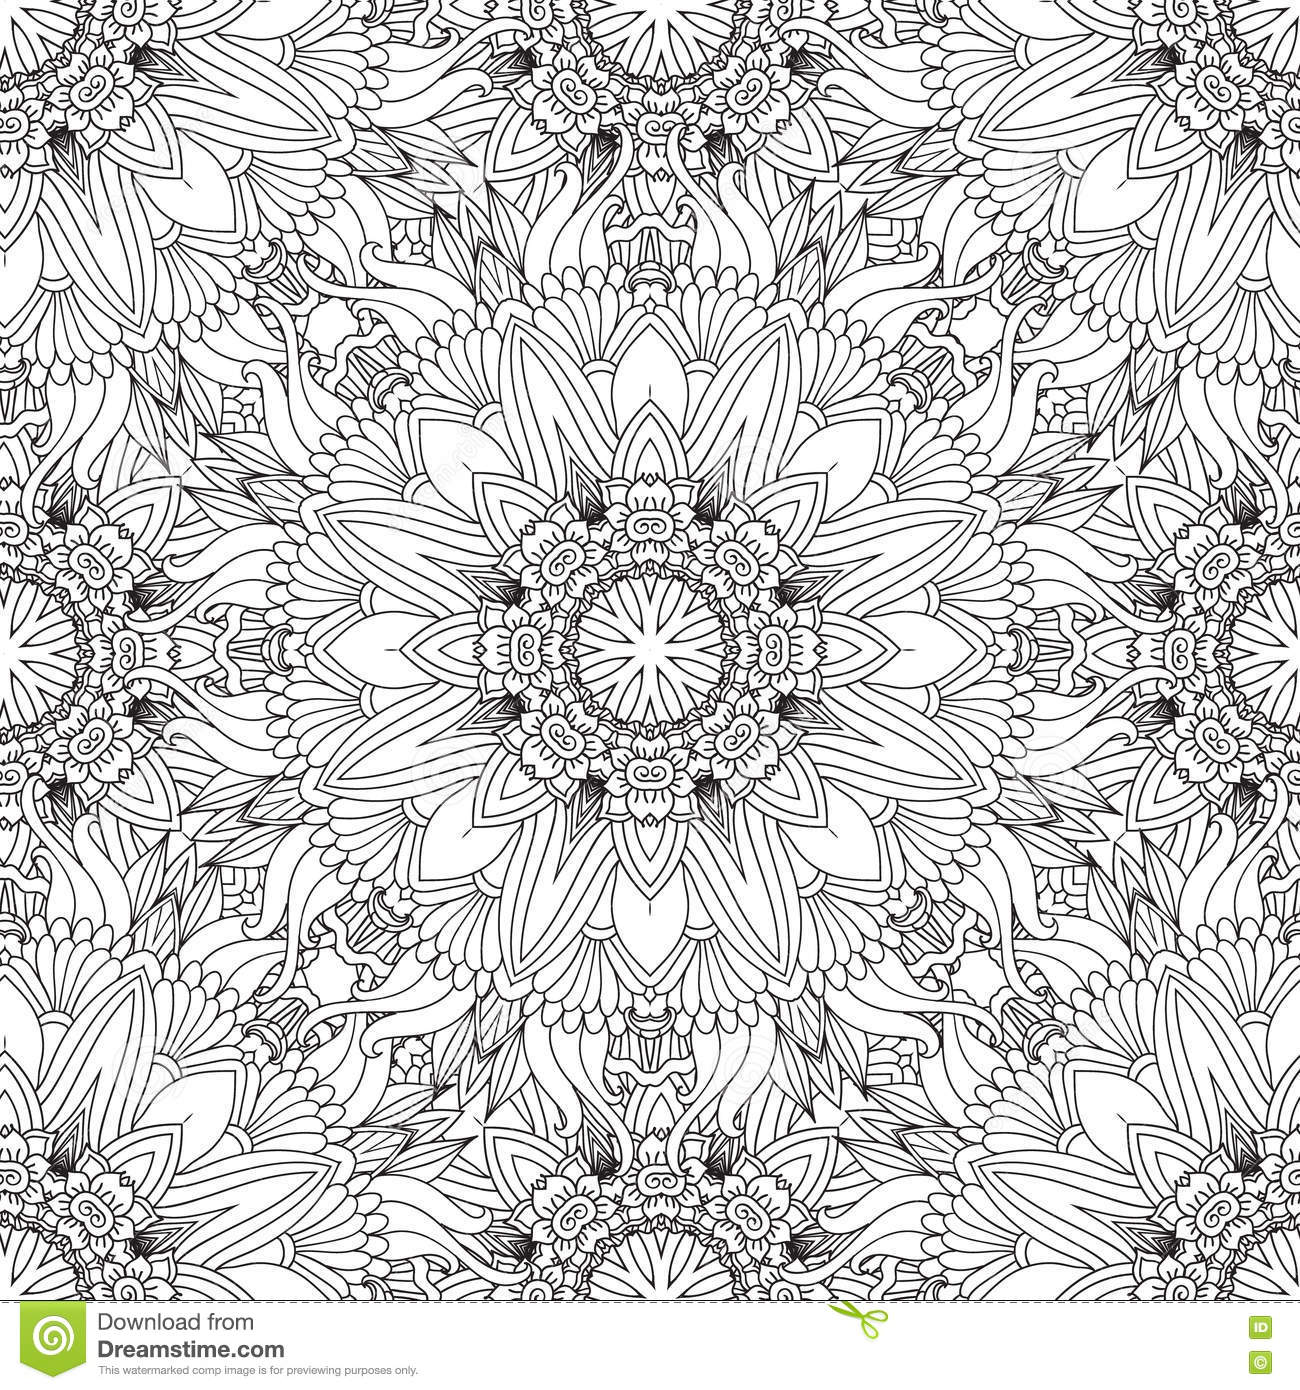 Coloring Pages For Adultscorative Hand Drawn Doodle Nature Ornamental Curl Vector Sketchy